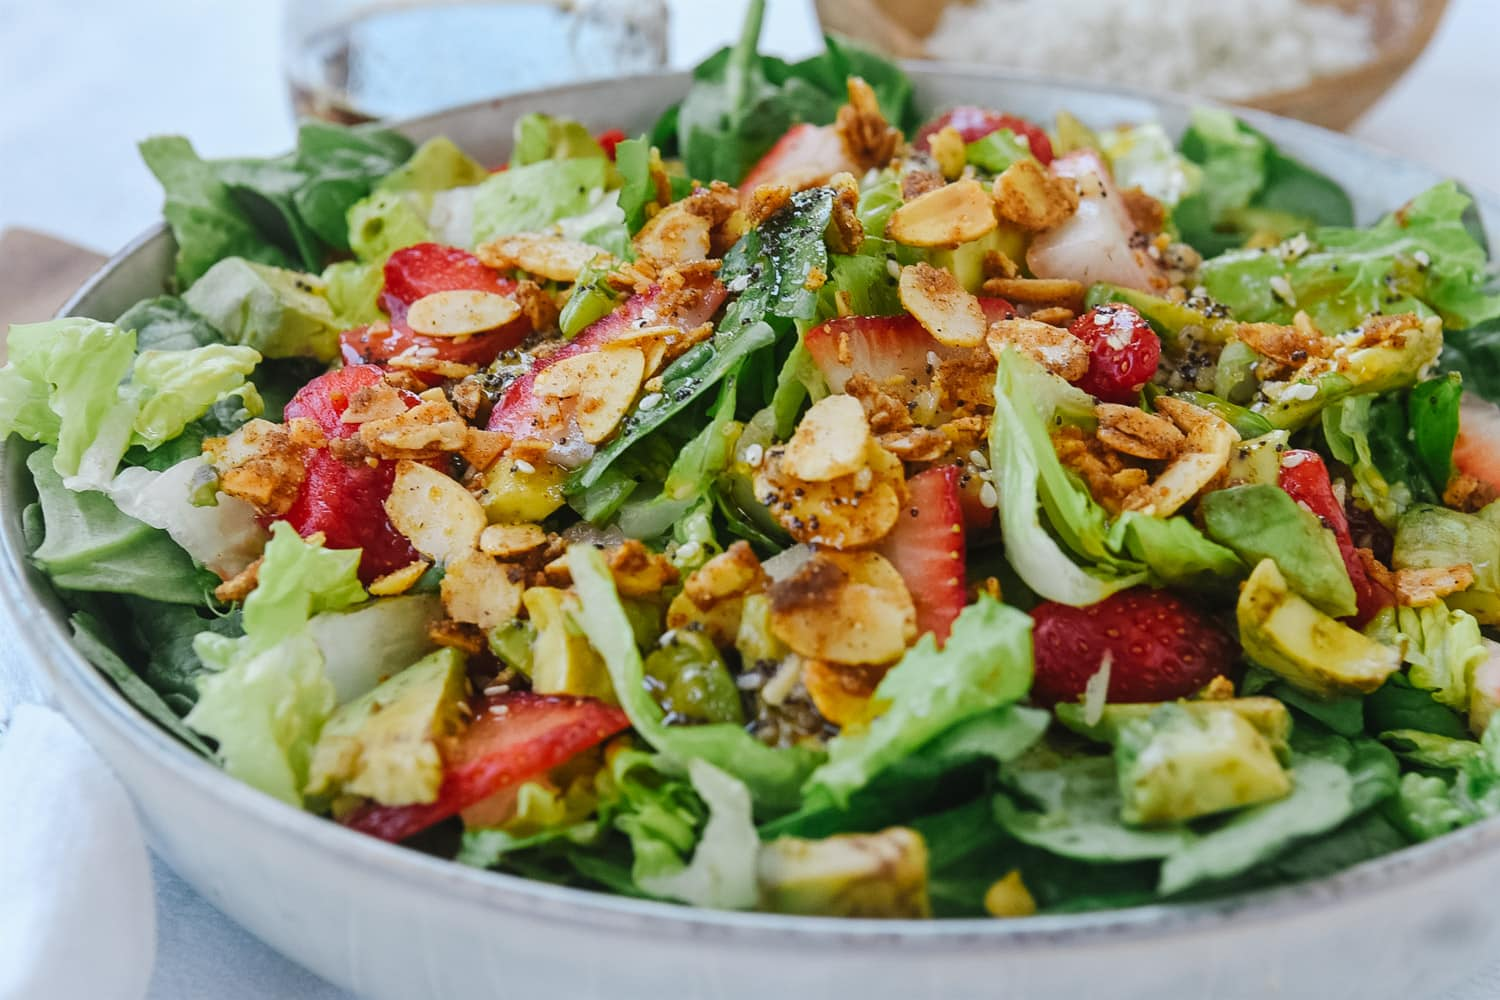 strawberry avocado salad with spiced nuts